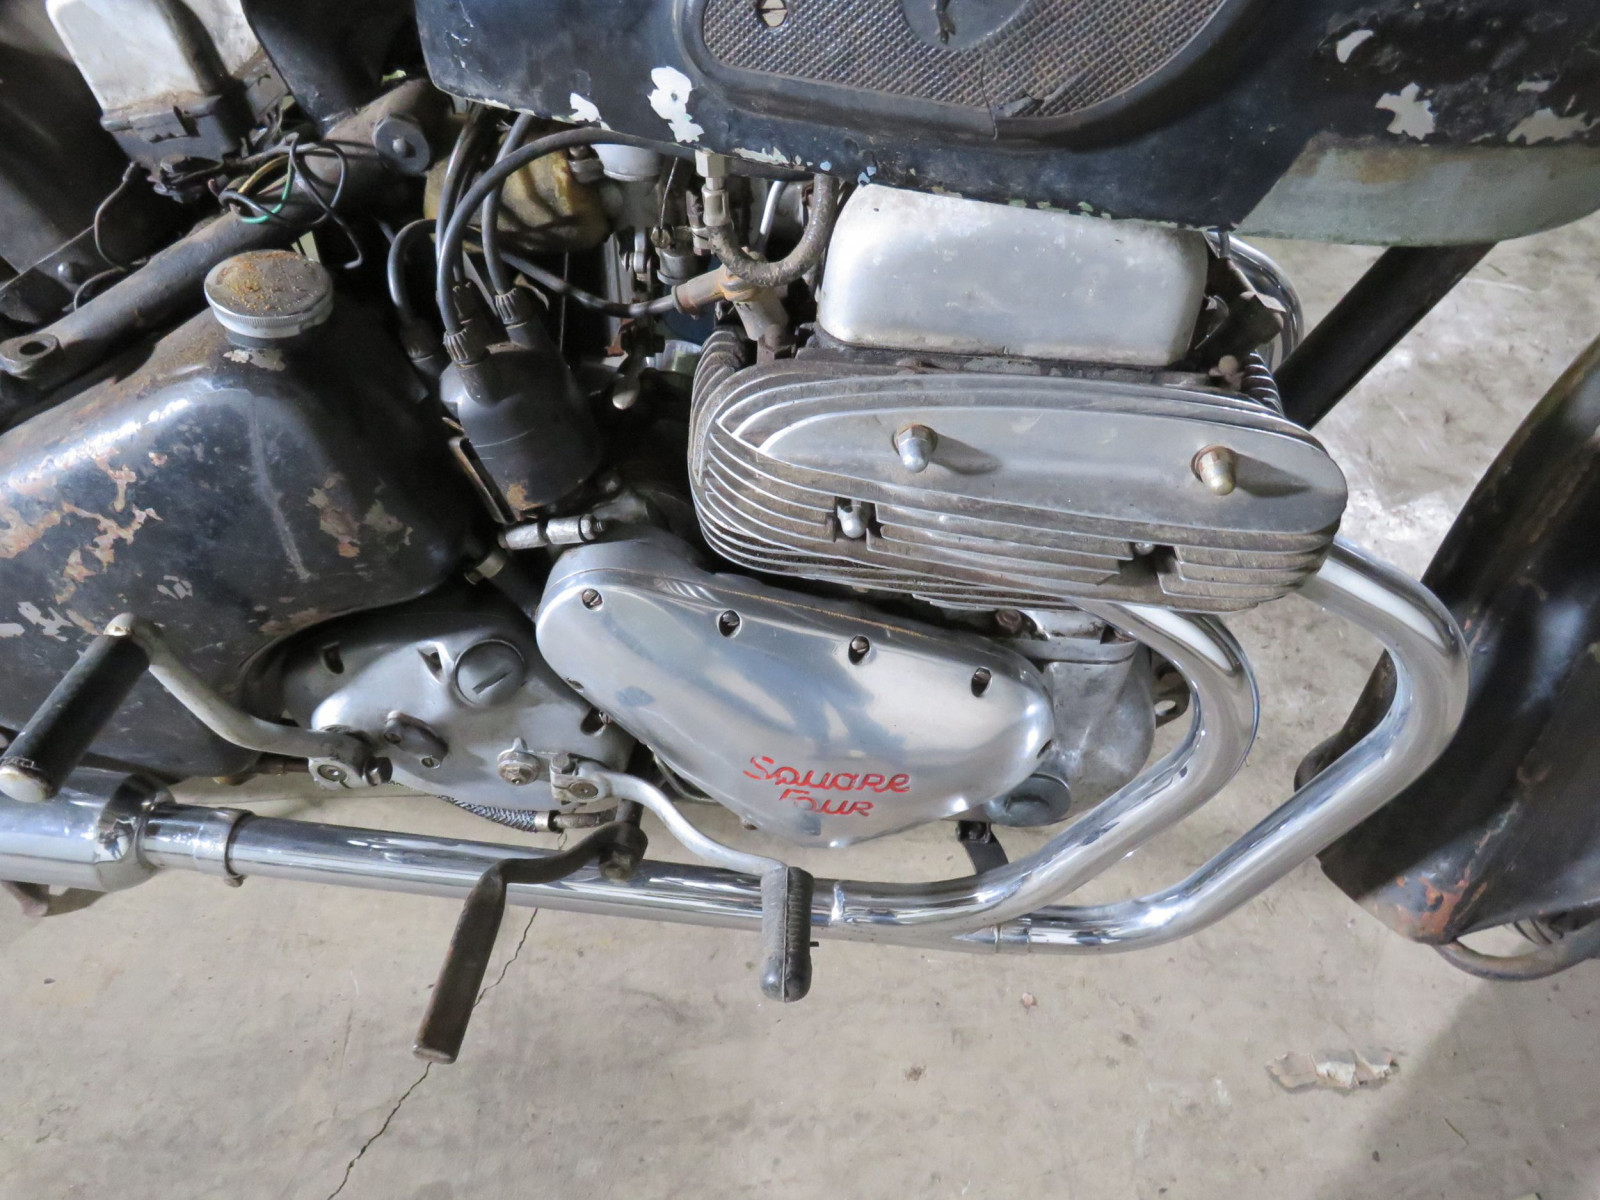 1957 Ariel Square Four Motorcycle - Image 7